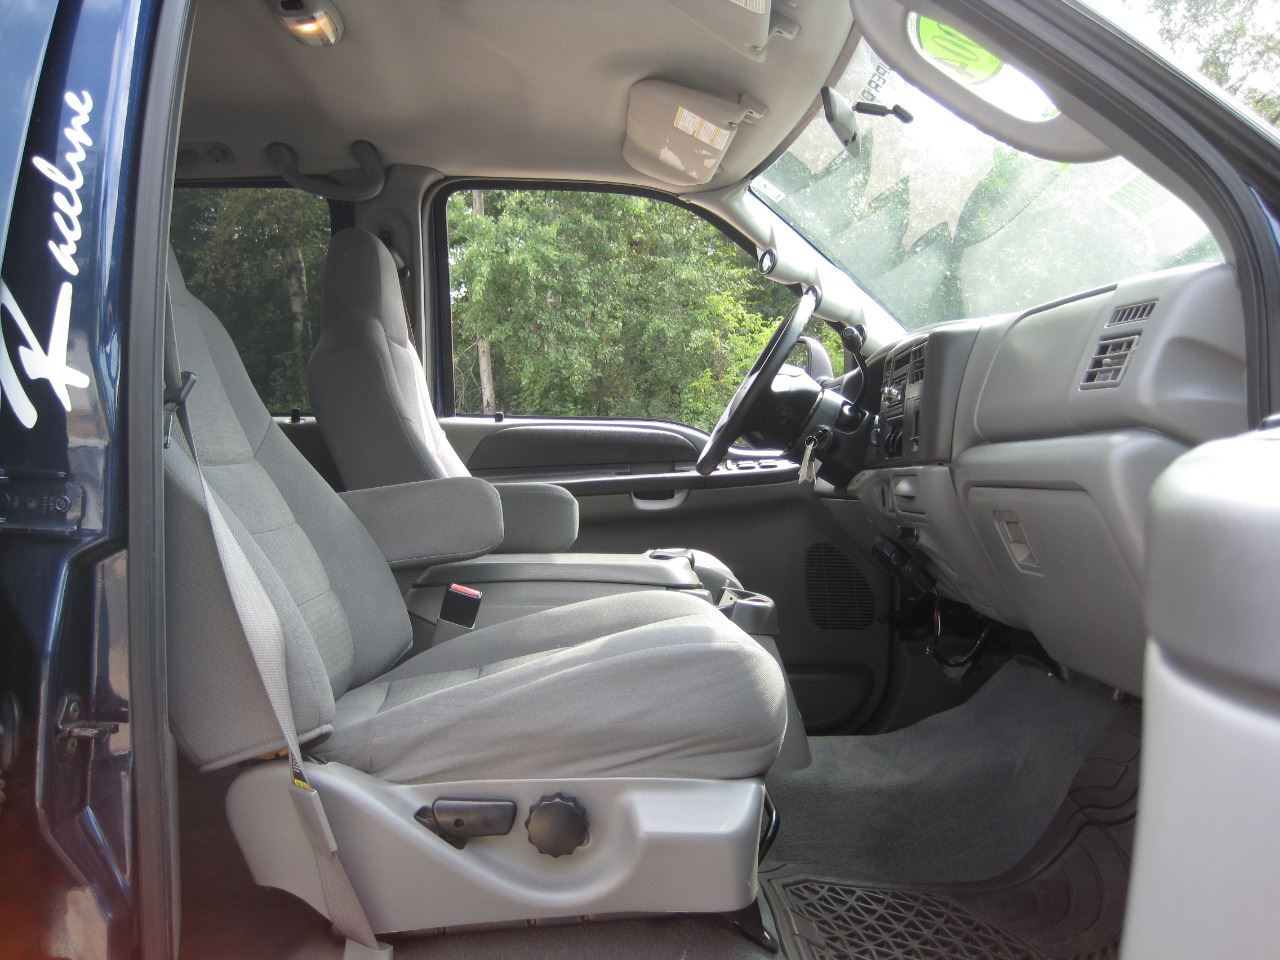 2004 Ford F 250 Super Duty 4dr Crew Cab Xlt 4wd Sb In Columbiaville Contact